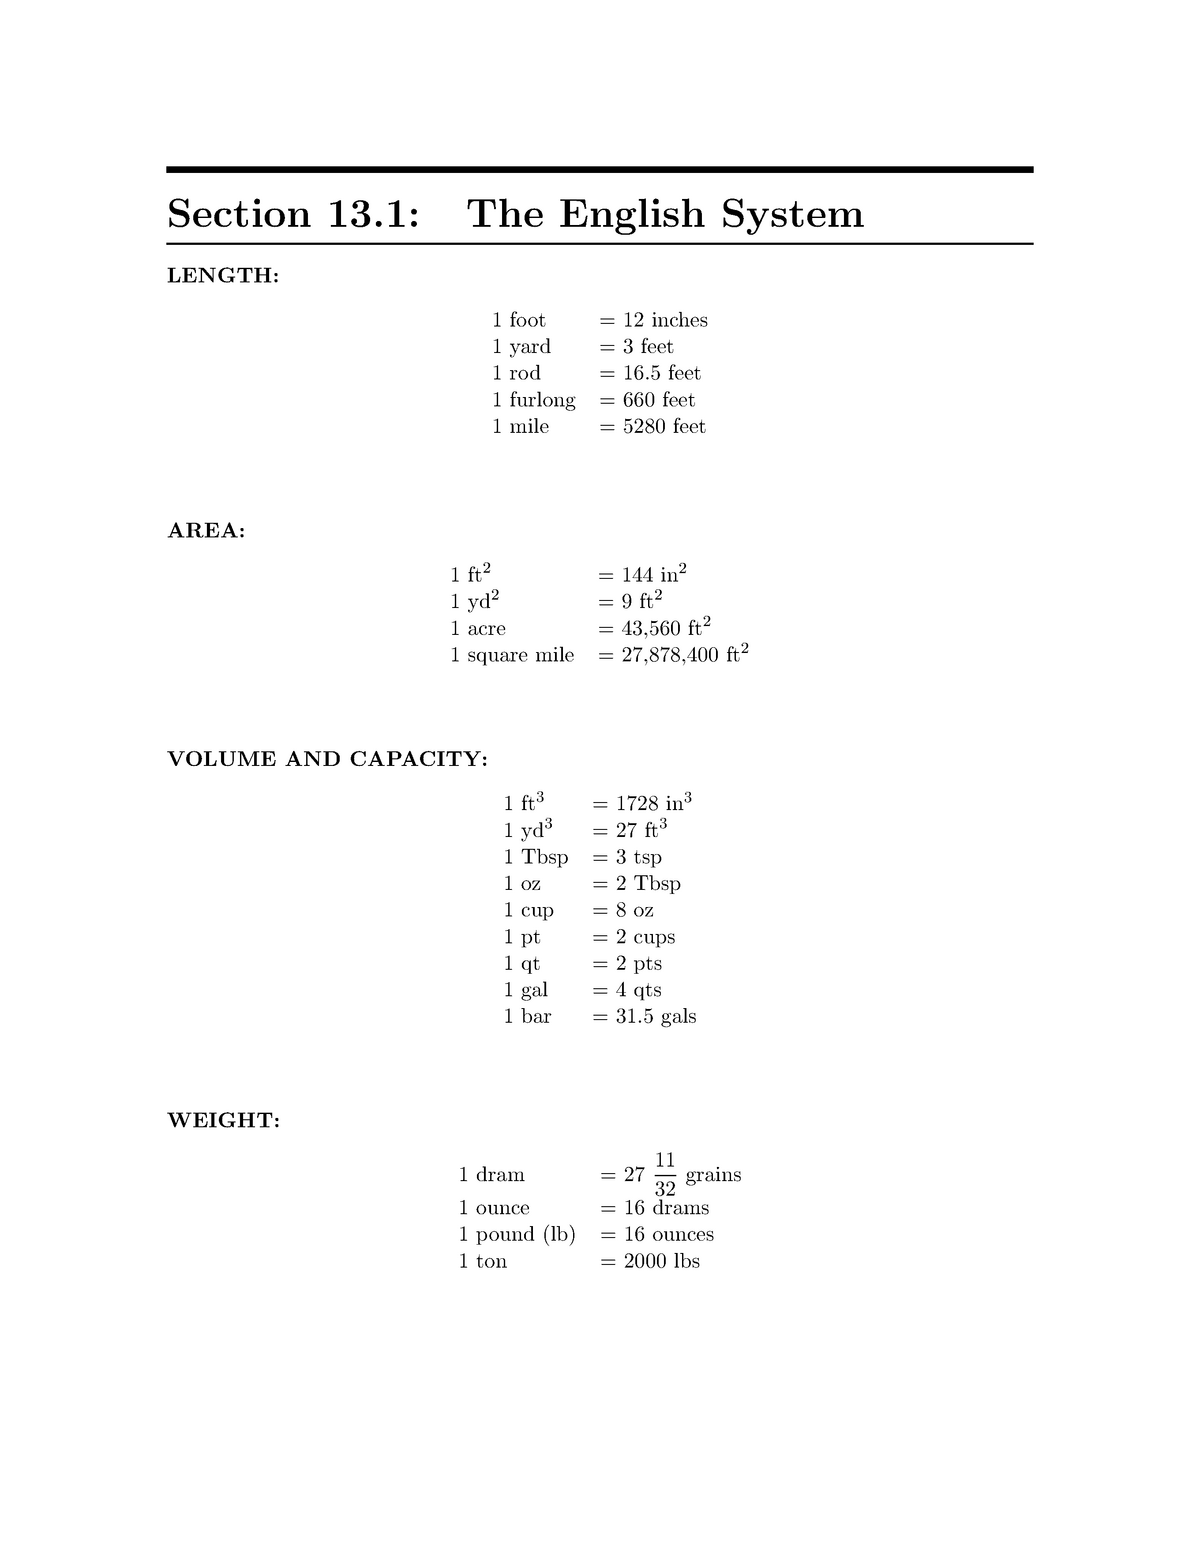 The English System - MATH 14002: Basic Mathematical Concepts